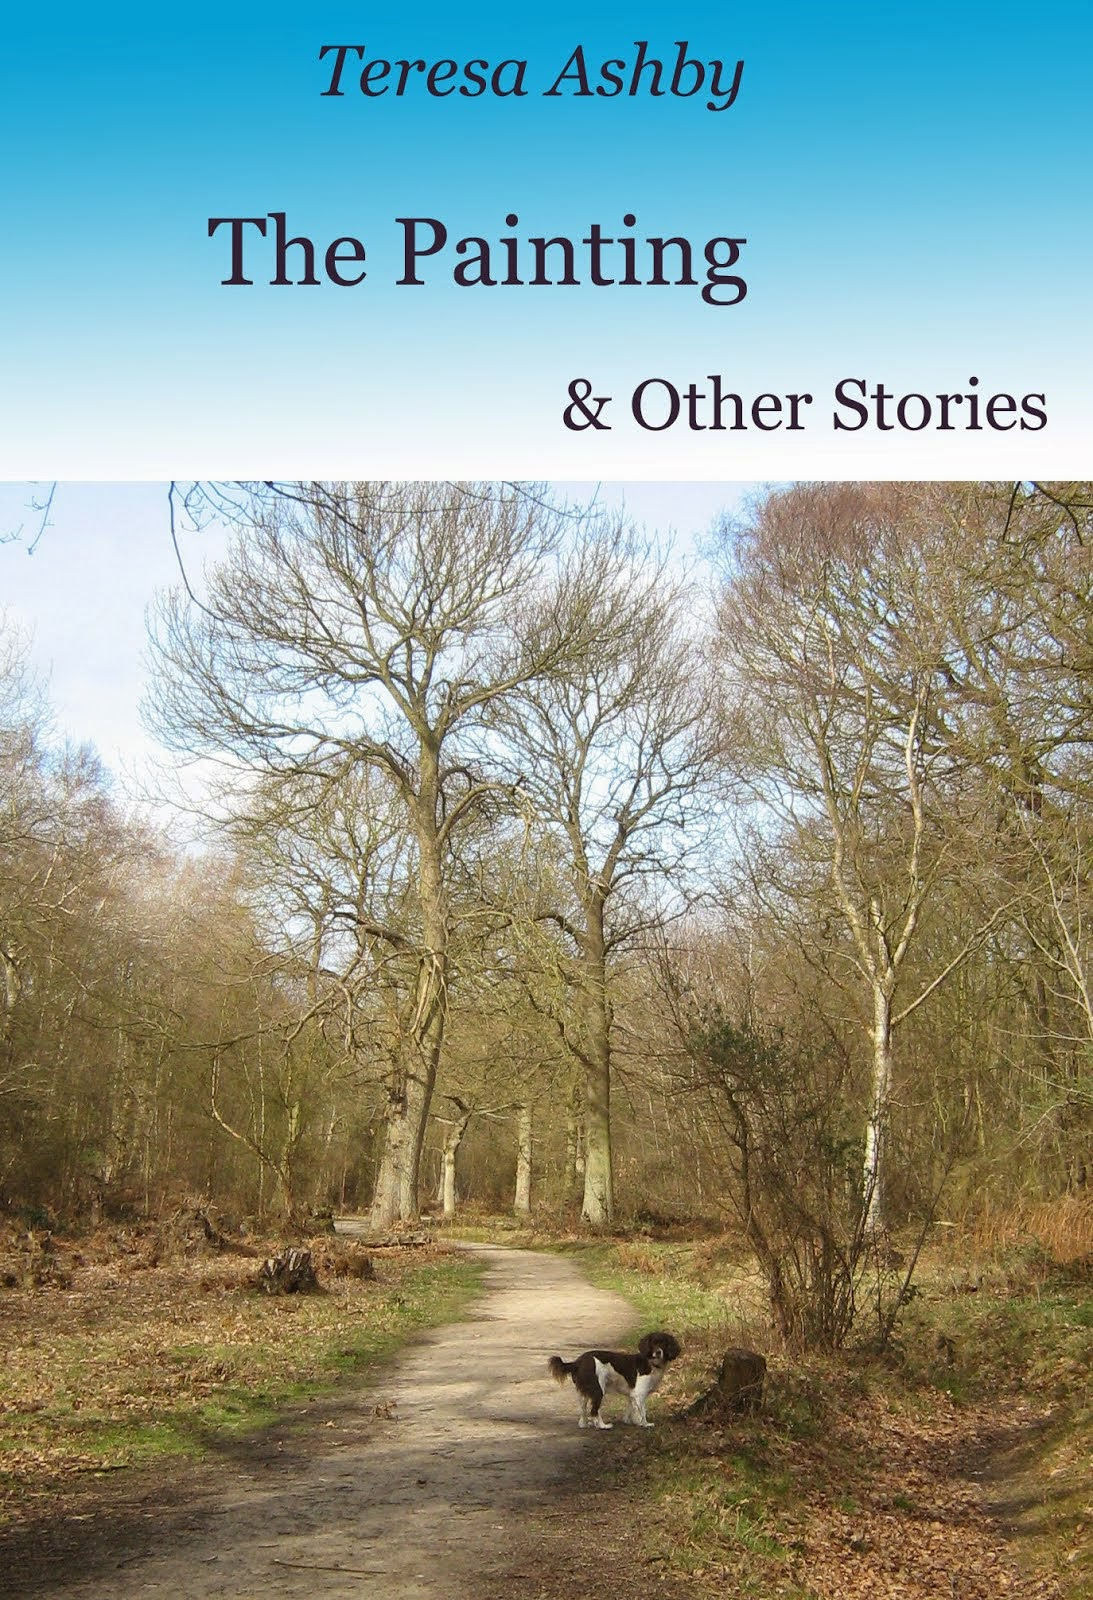 The Painting & Other Stories